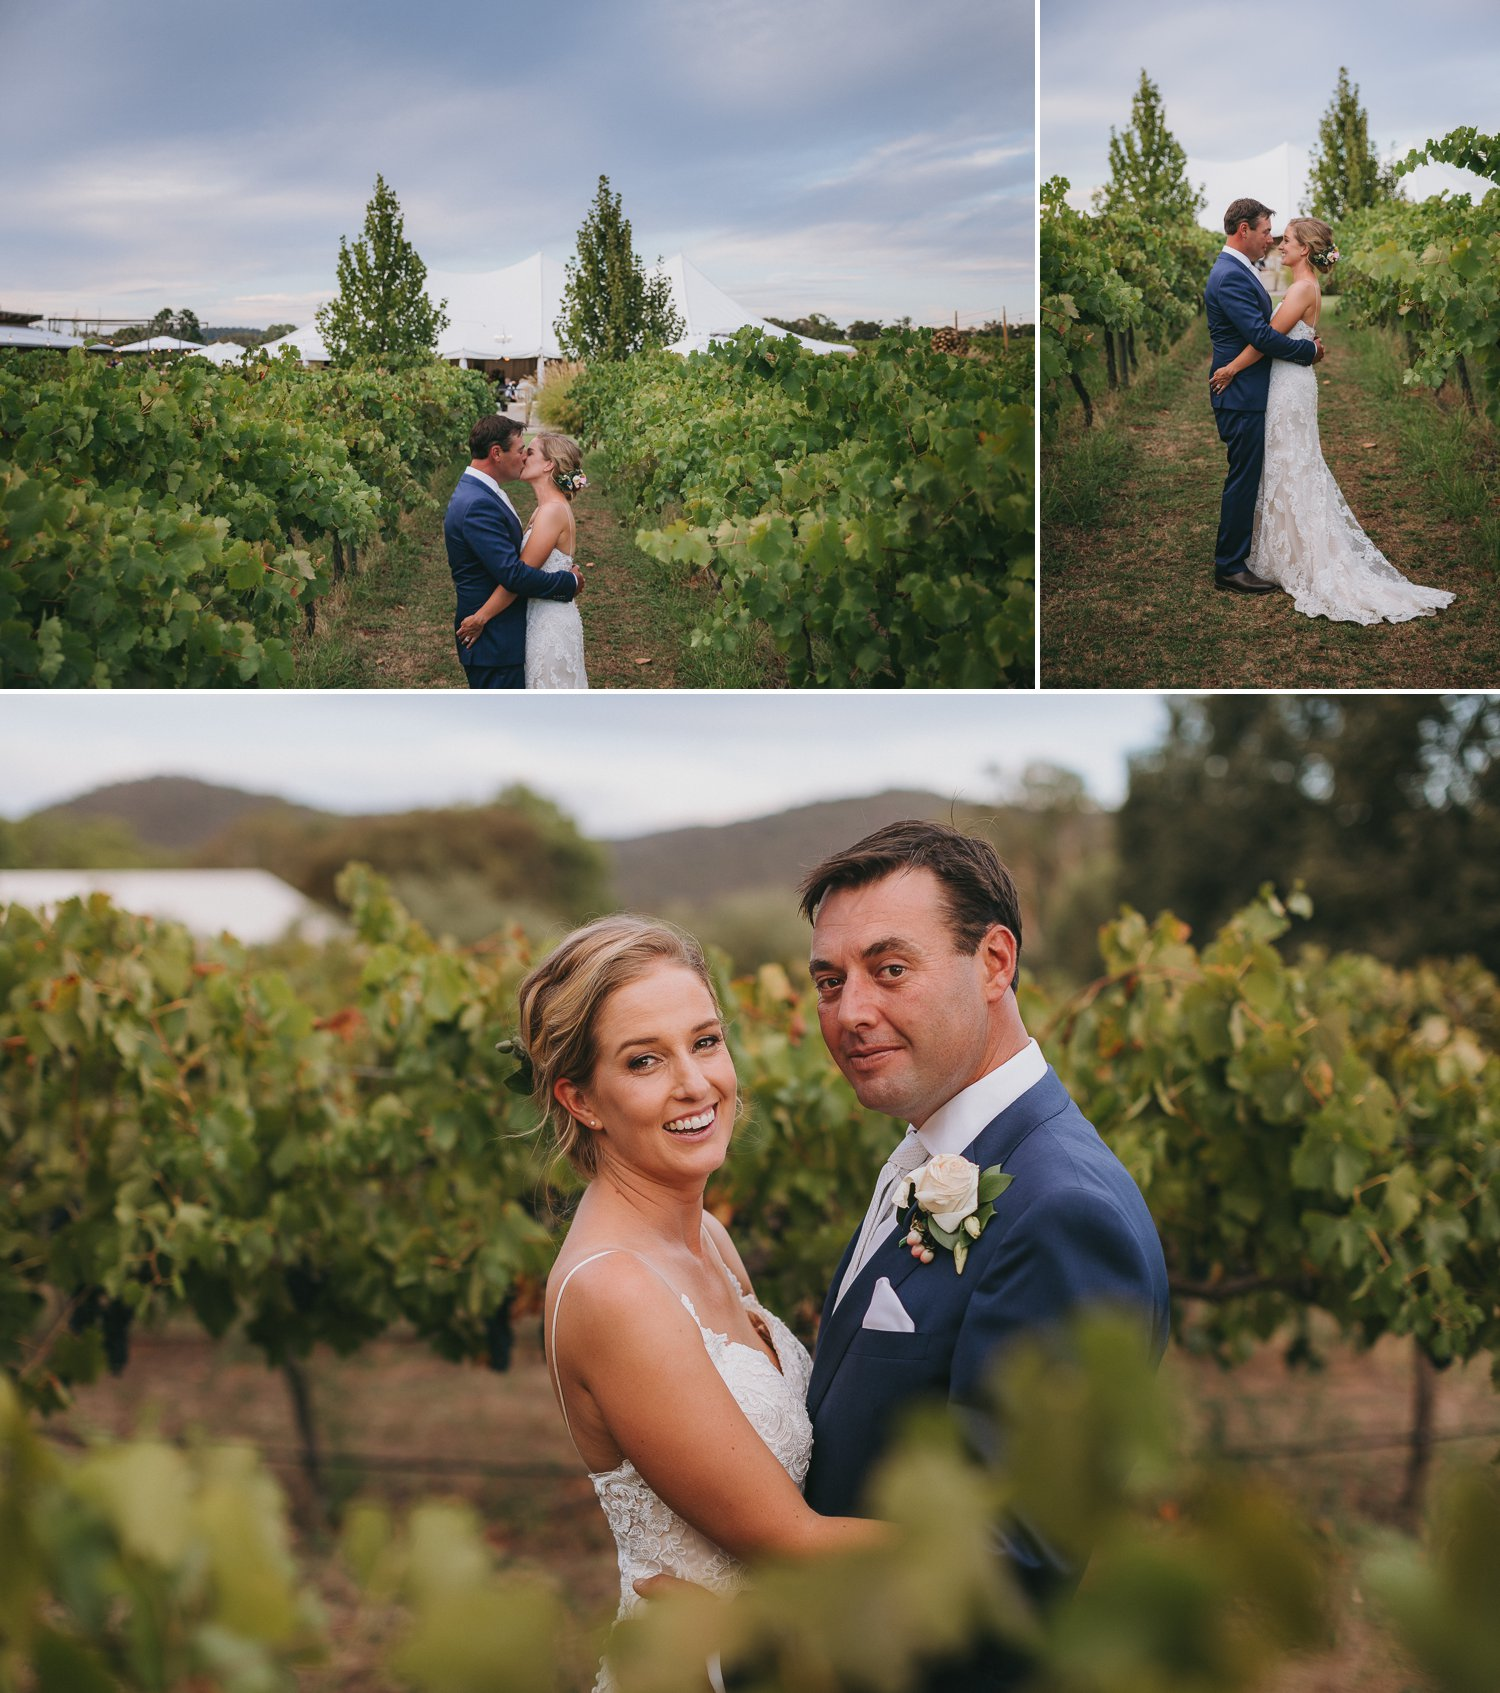 Vinegrove_Mudgee Weding Photography 28.jpg